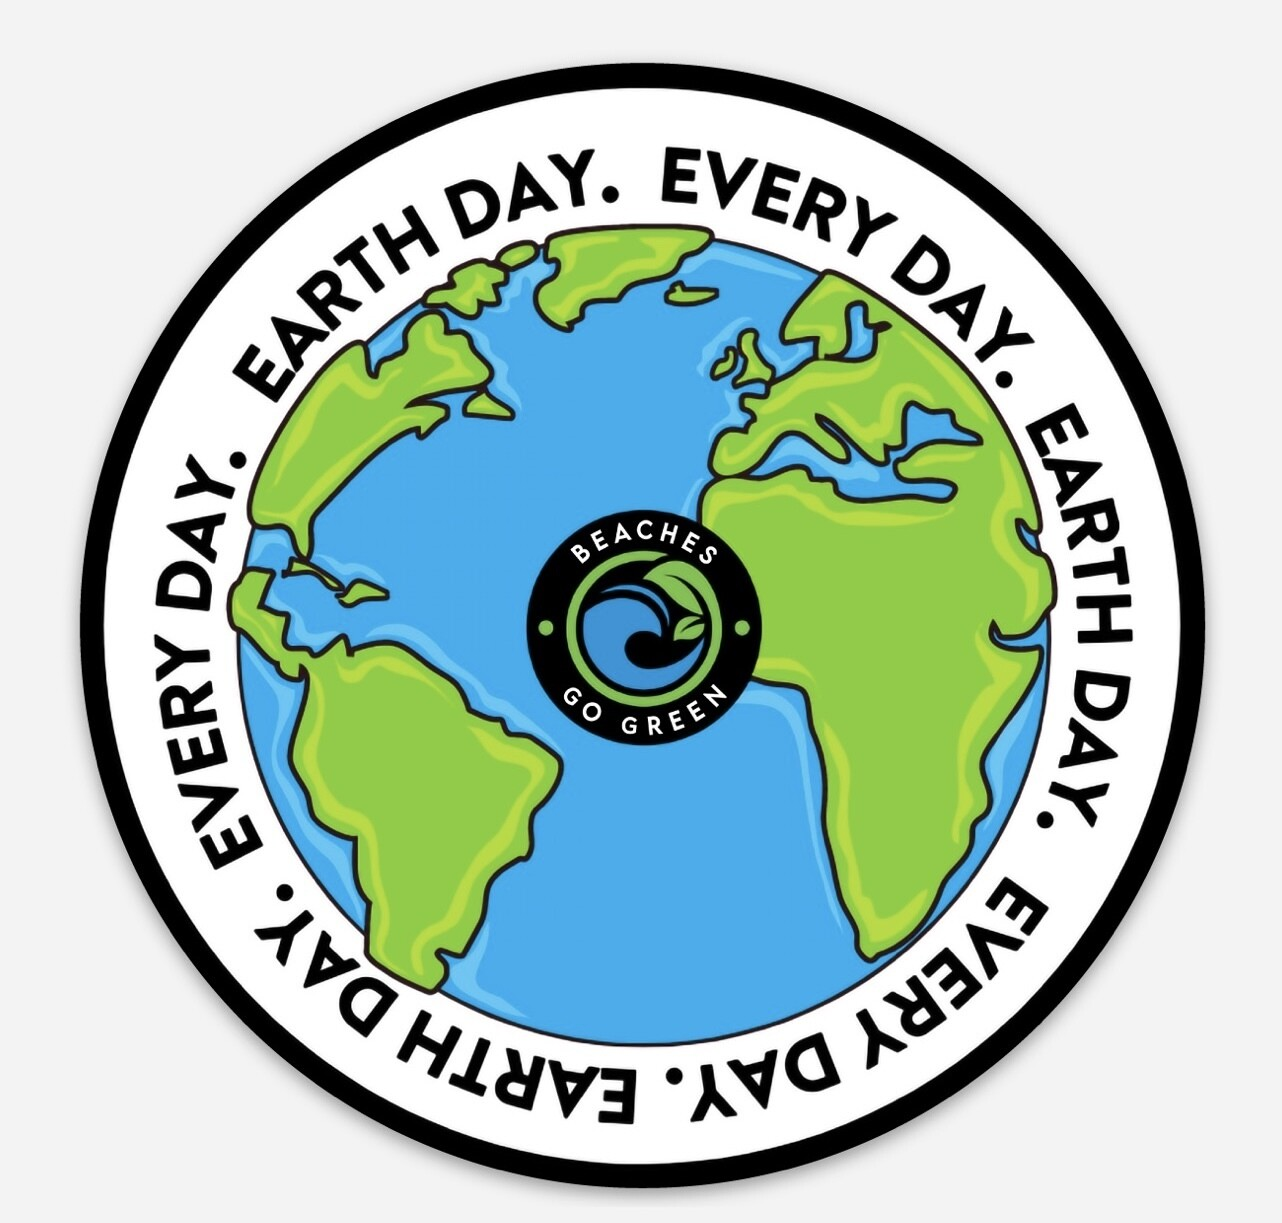 EARTH DAY.  EVERY DAY. STICKER